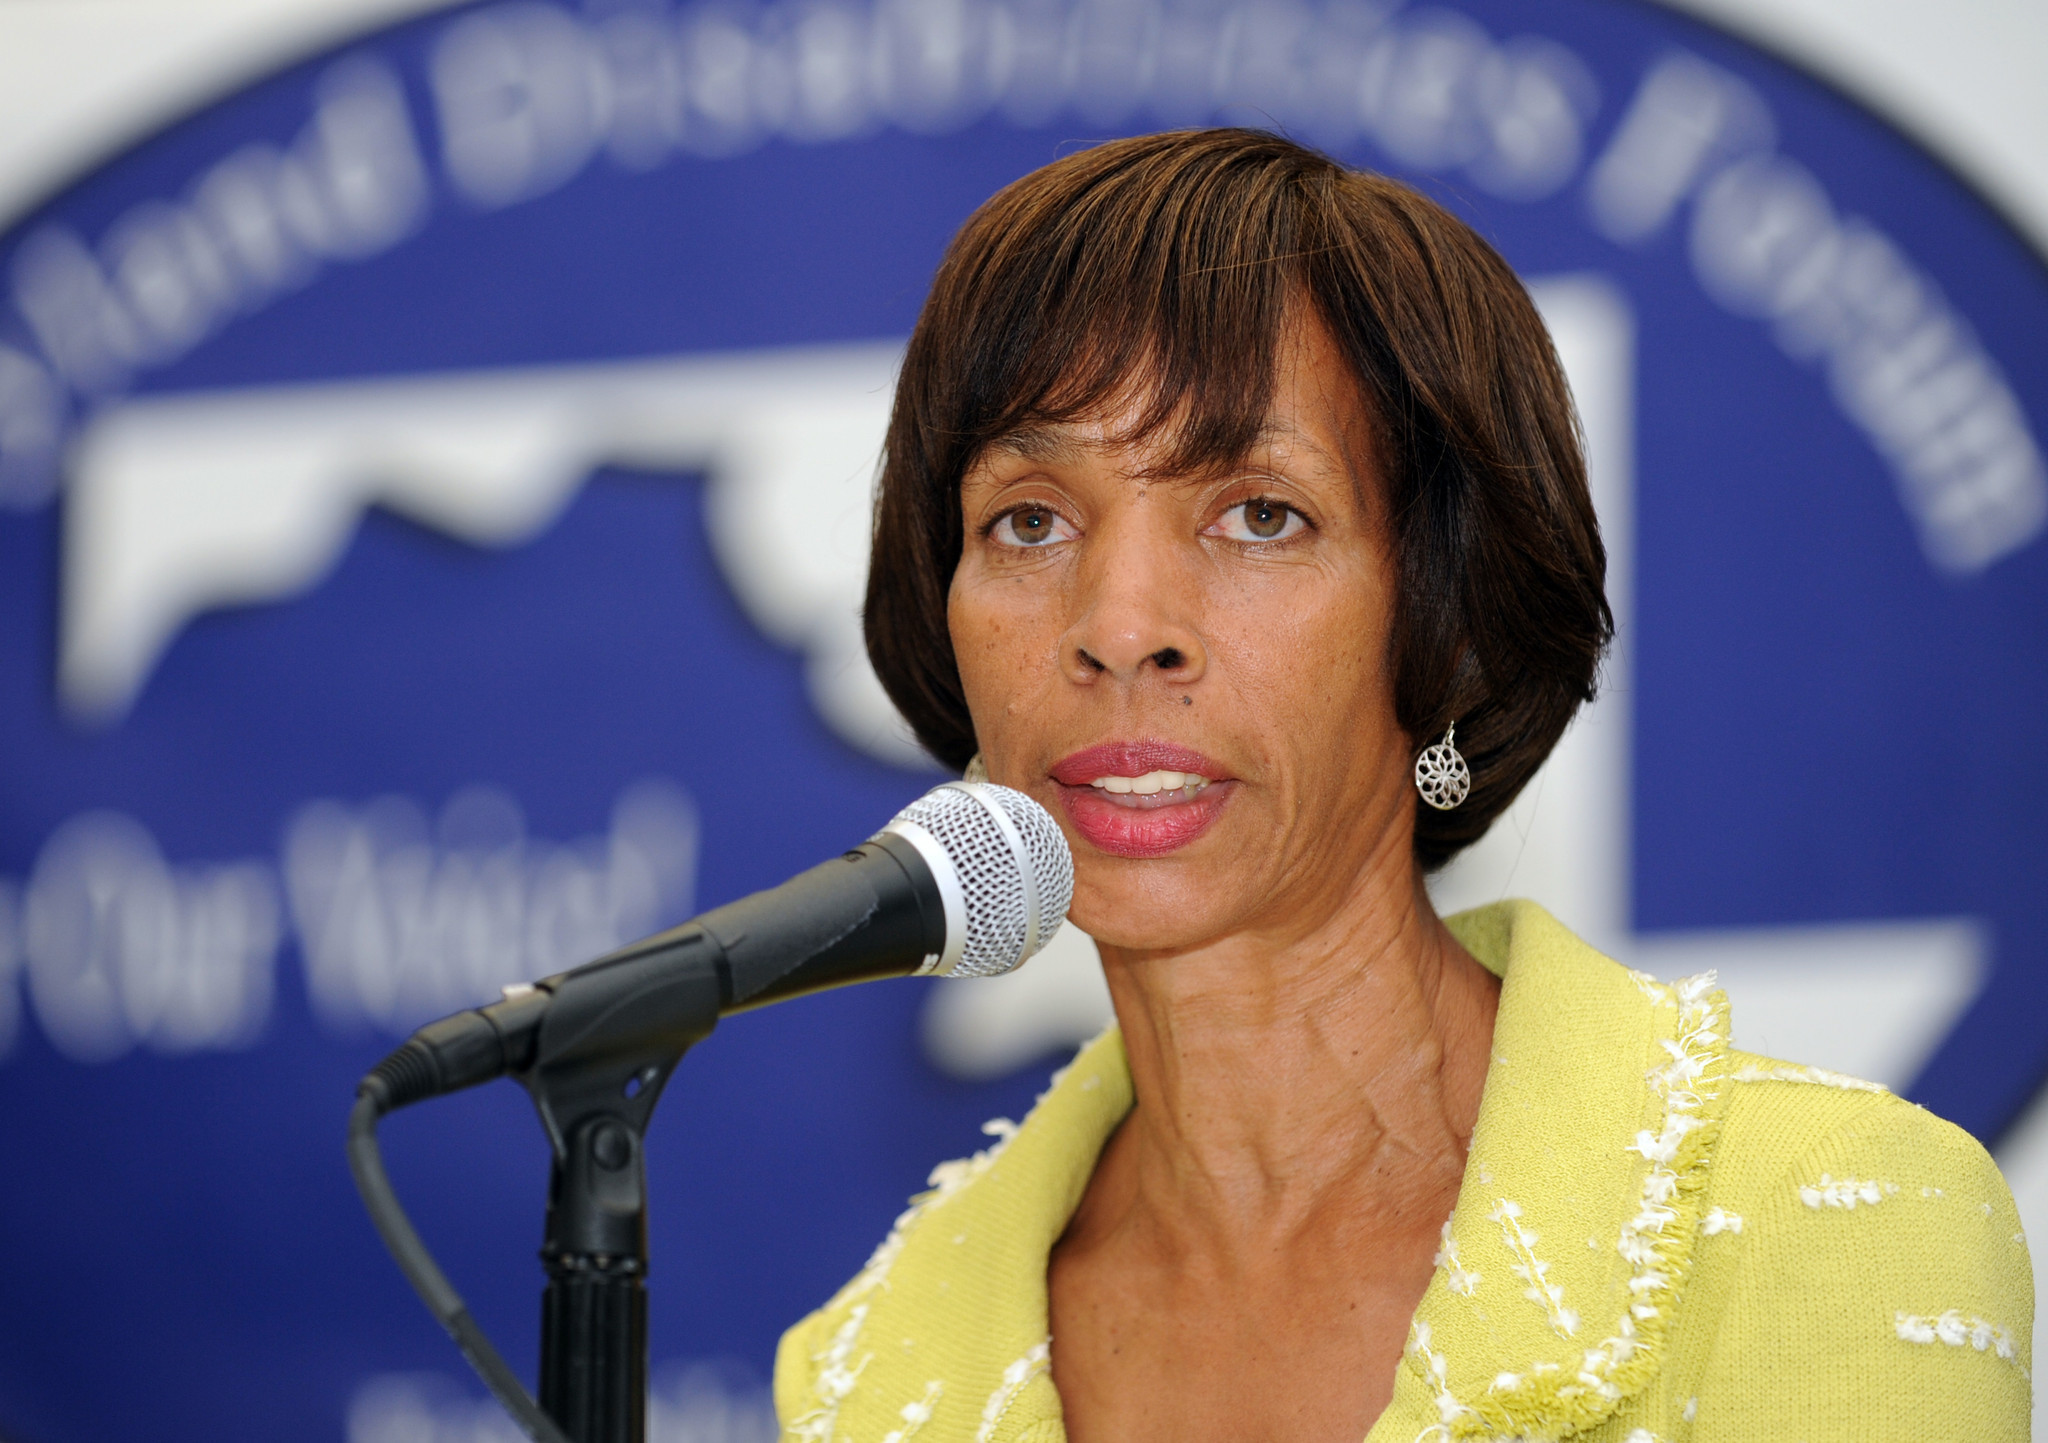 http://www.trbimg.com/img-56c20f98/turbine/bal-pugh-releases-education-plan-calls-for-mayoral-control-of-baltimore-schools-20160215